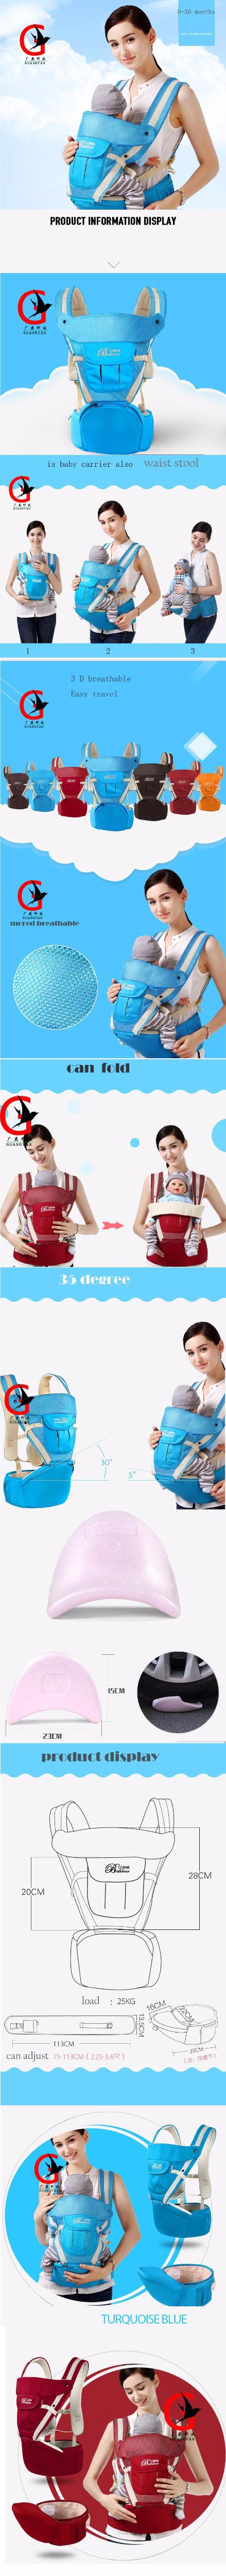 infant toddler ergonomic baby carrier sling backpack hipseat newborn Baby Wrap Sling 0 36 months ODXD BS1416